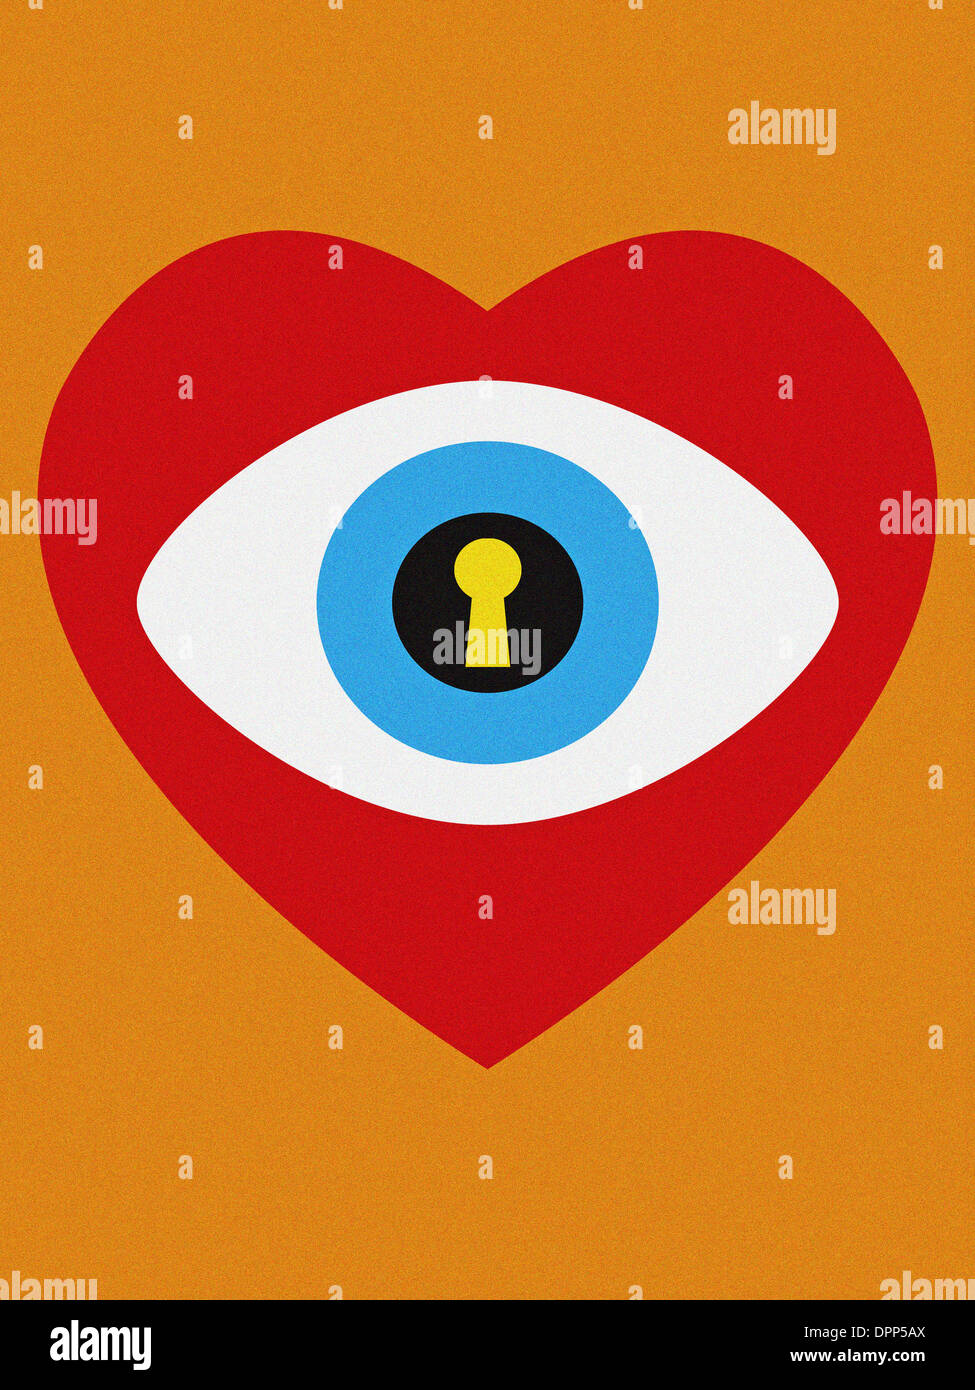 A heart with an eyeball that has a keyhole in it - Stock Image